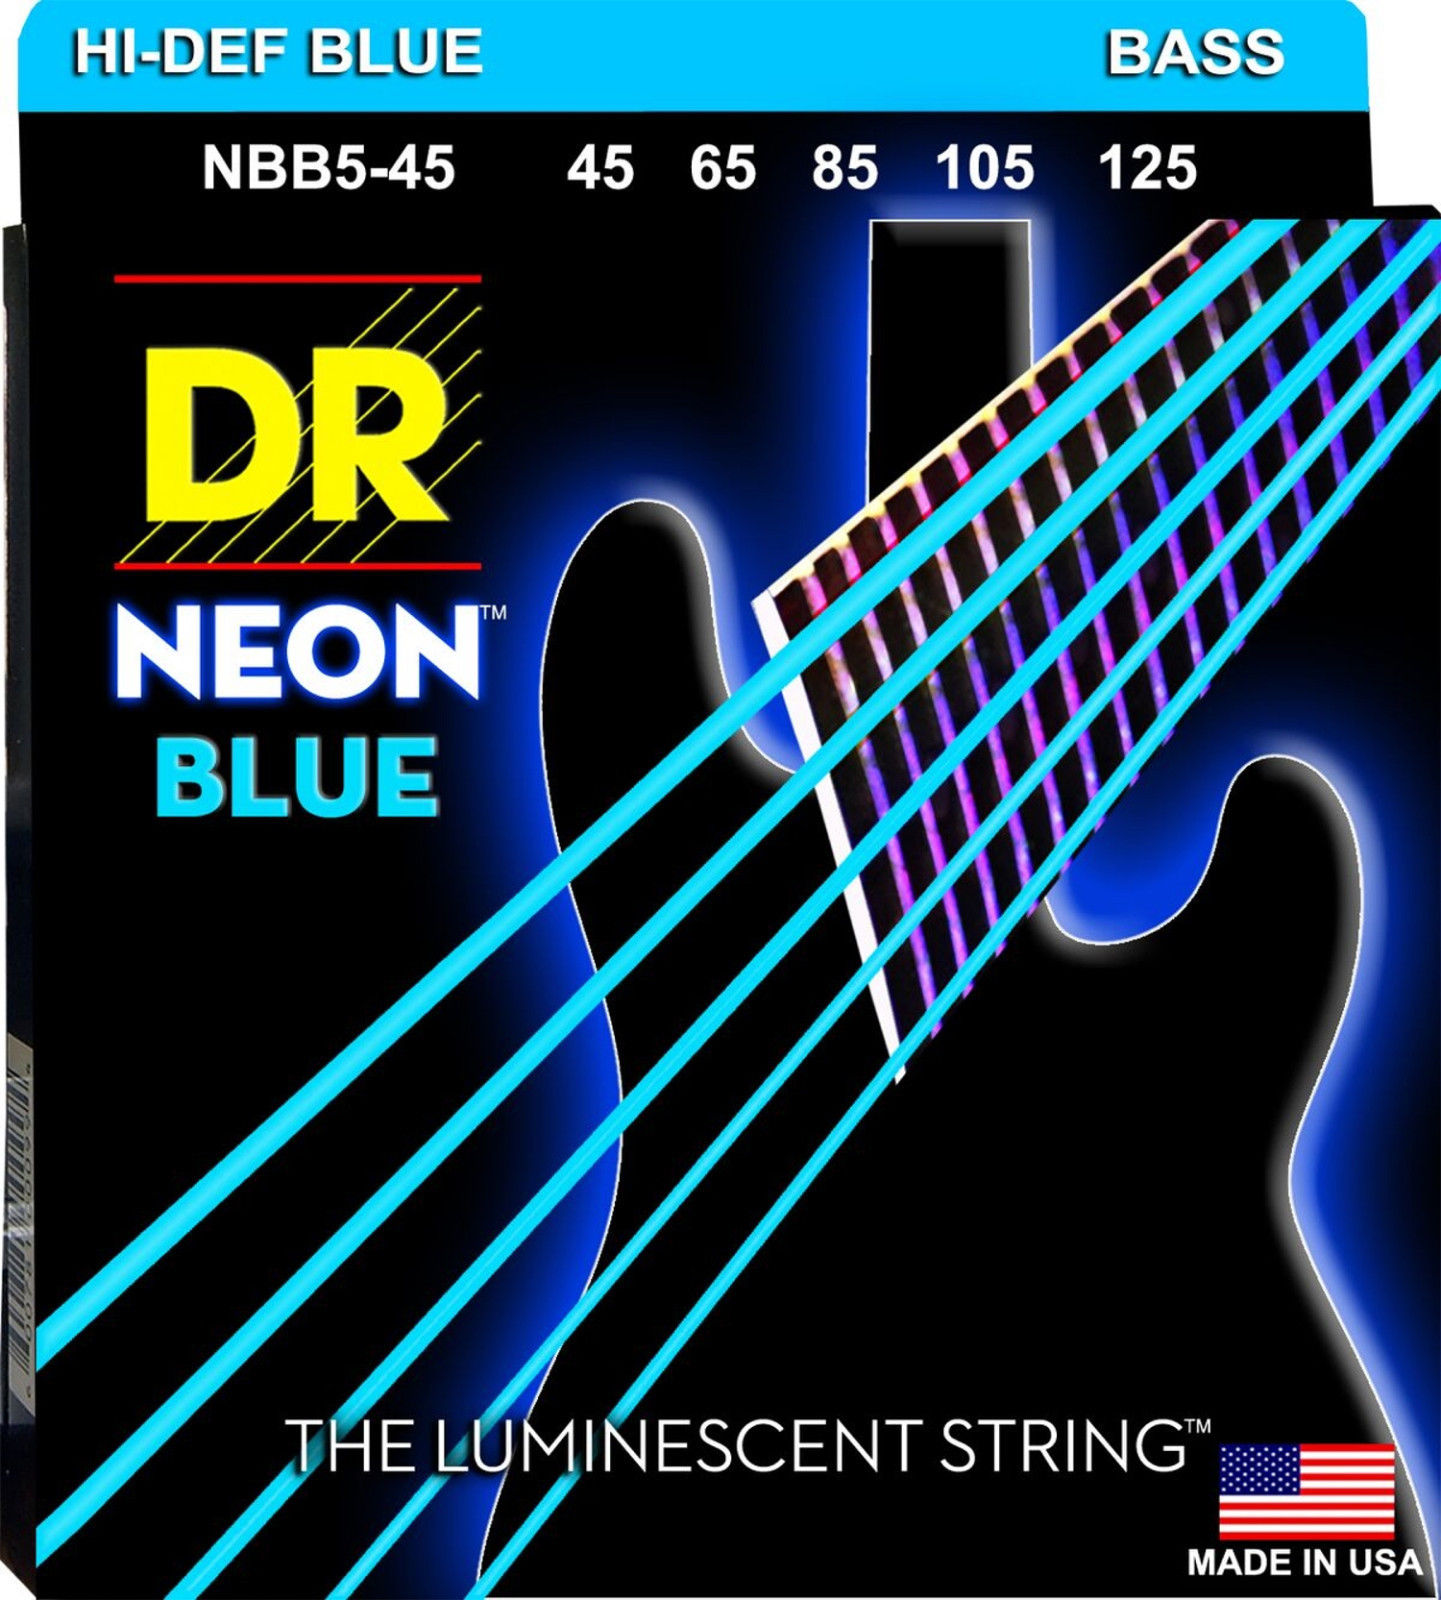 DR K3 Hi-def Neon Blue Luminescent Bass Guitar Strings, Light 40-100 or Medium 45-105 or 5-strings 45-125 dr k3 hi def neon green luminescent bass guitar strings light 40 100 or medium 45 105 or 5 strings 45 125